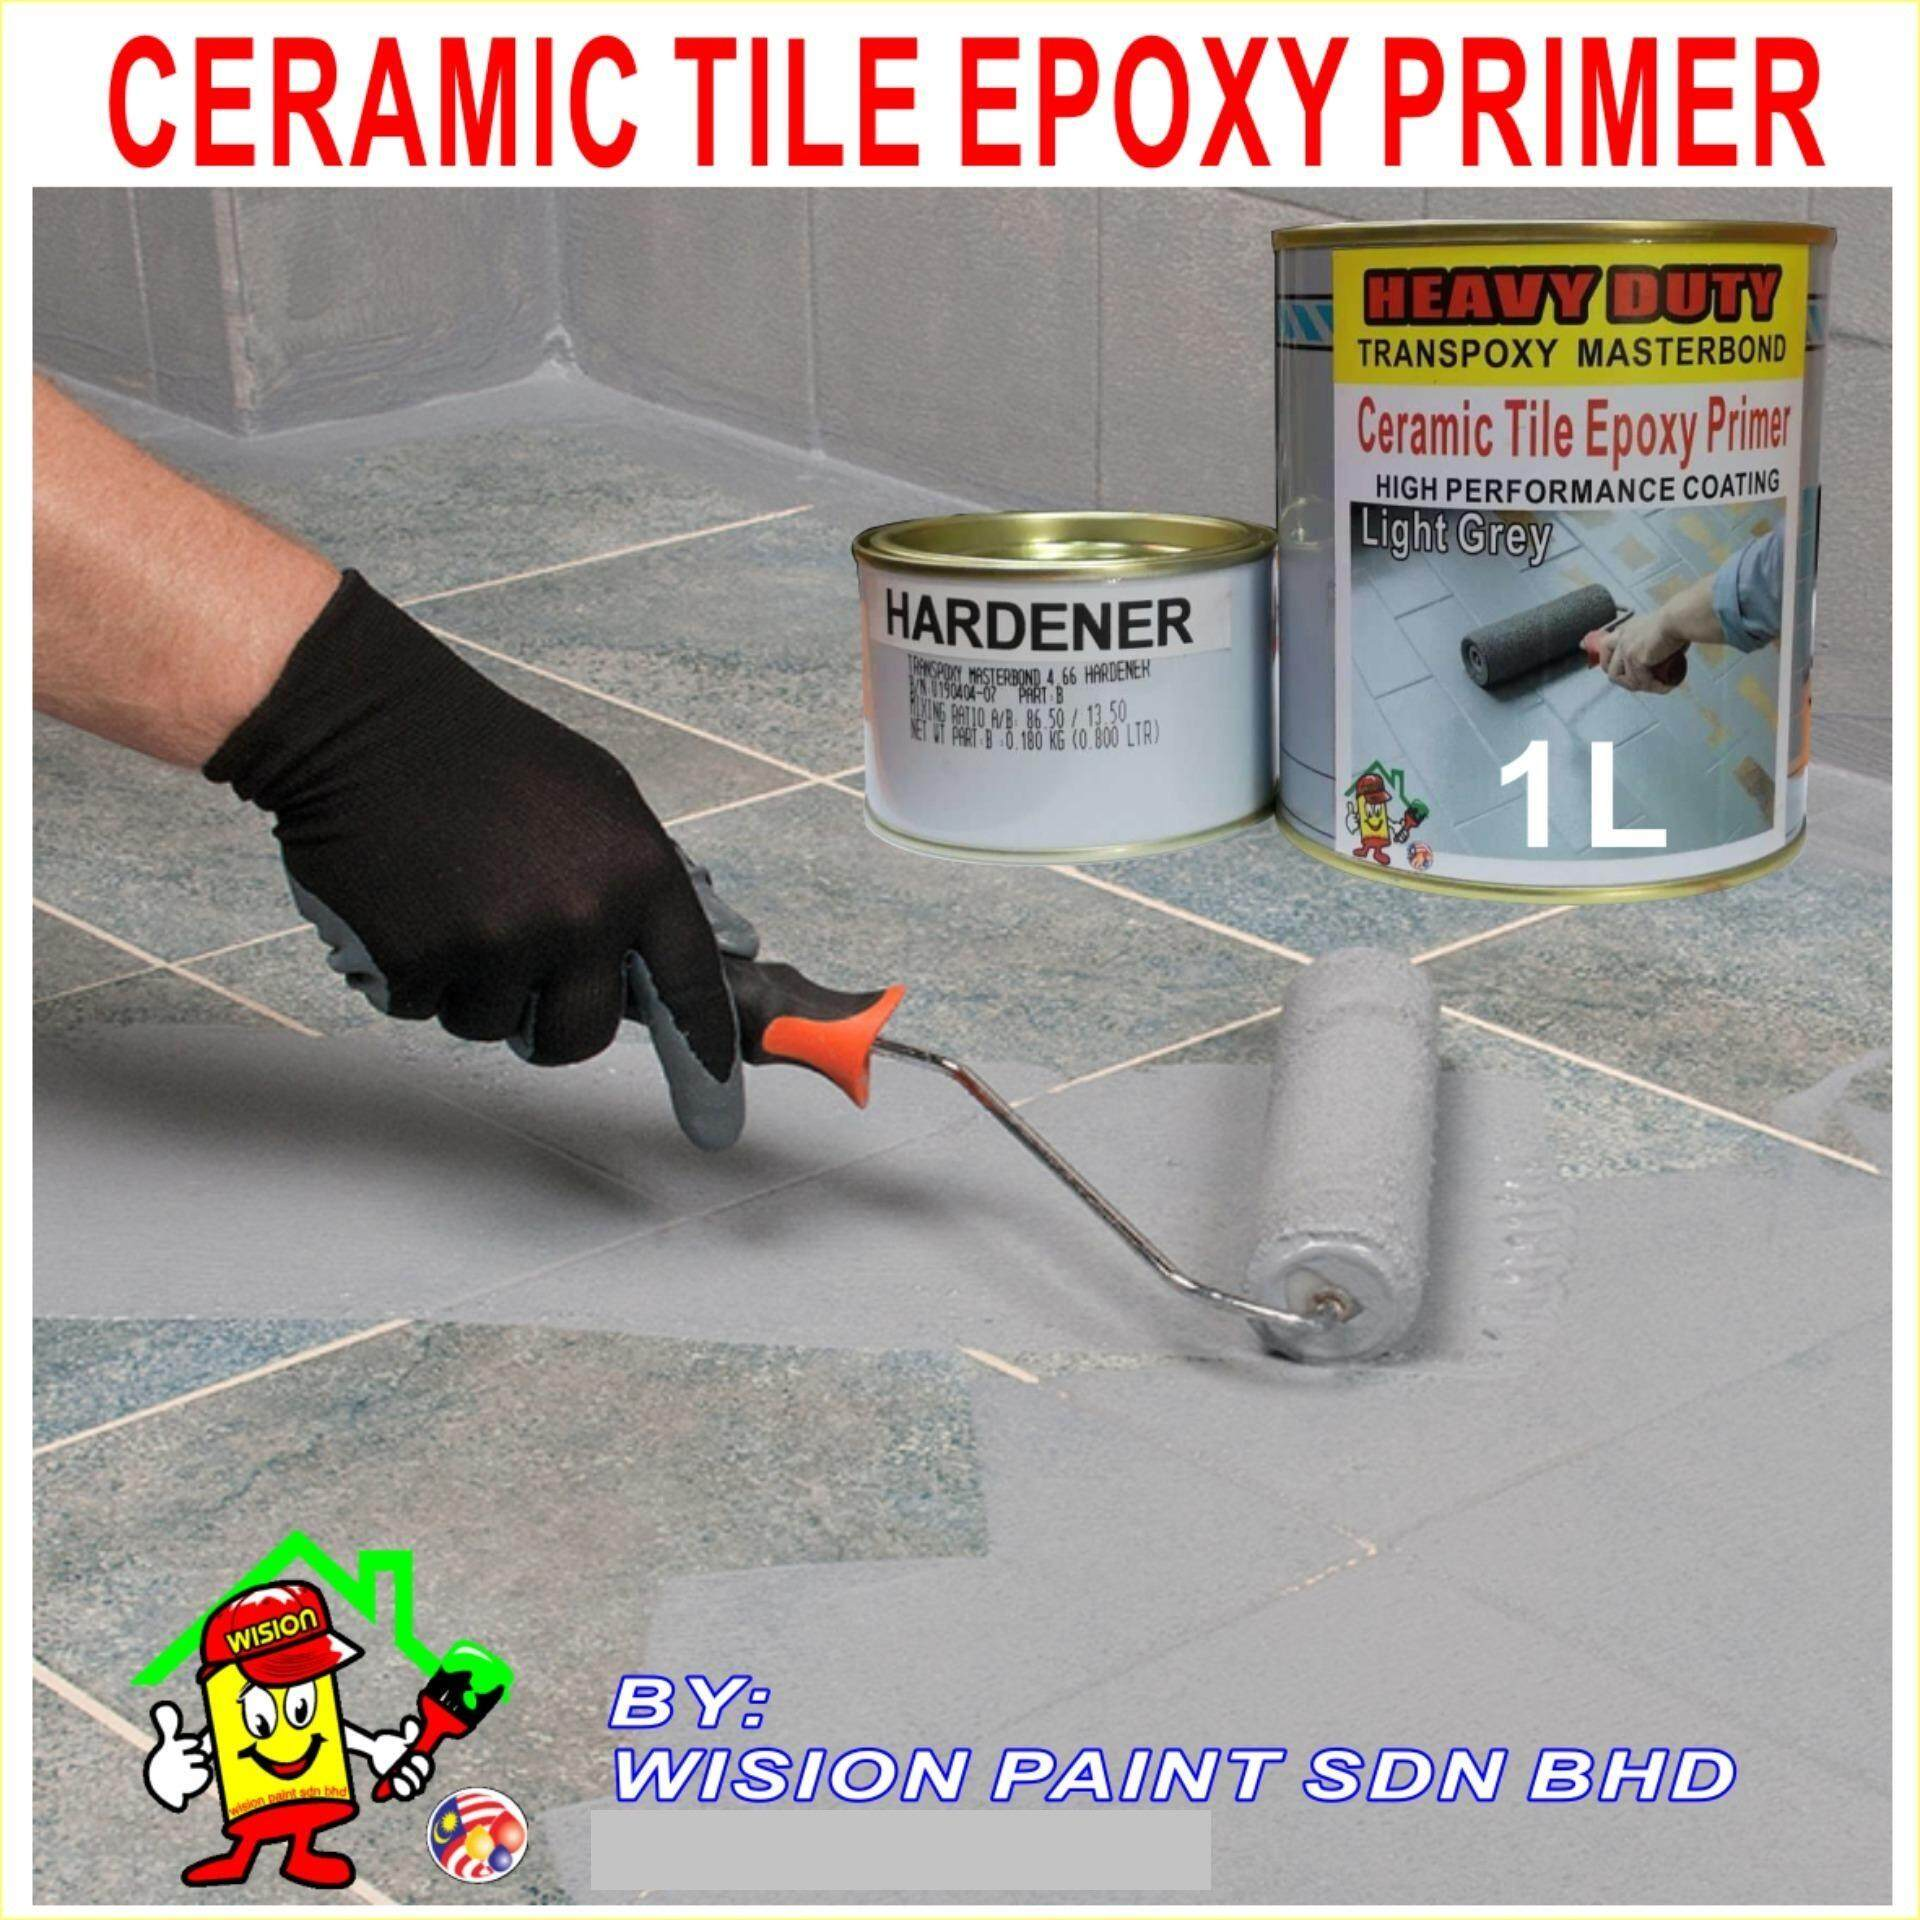 1L HEAVY DUTY EPOXY PRIMER TILES AND CERAMIC WATERPROOFING EXTERIOR AND INTERIOR TOILET